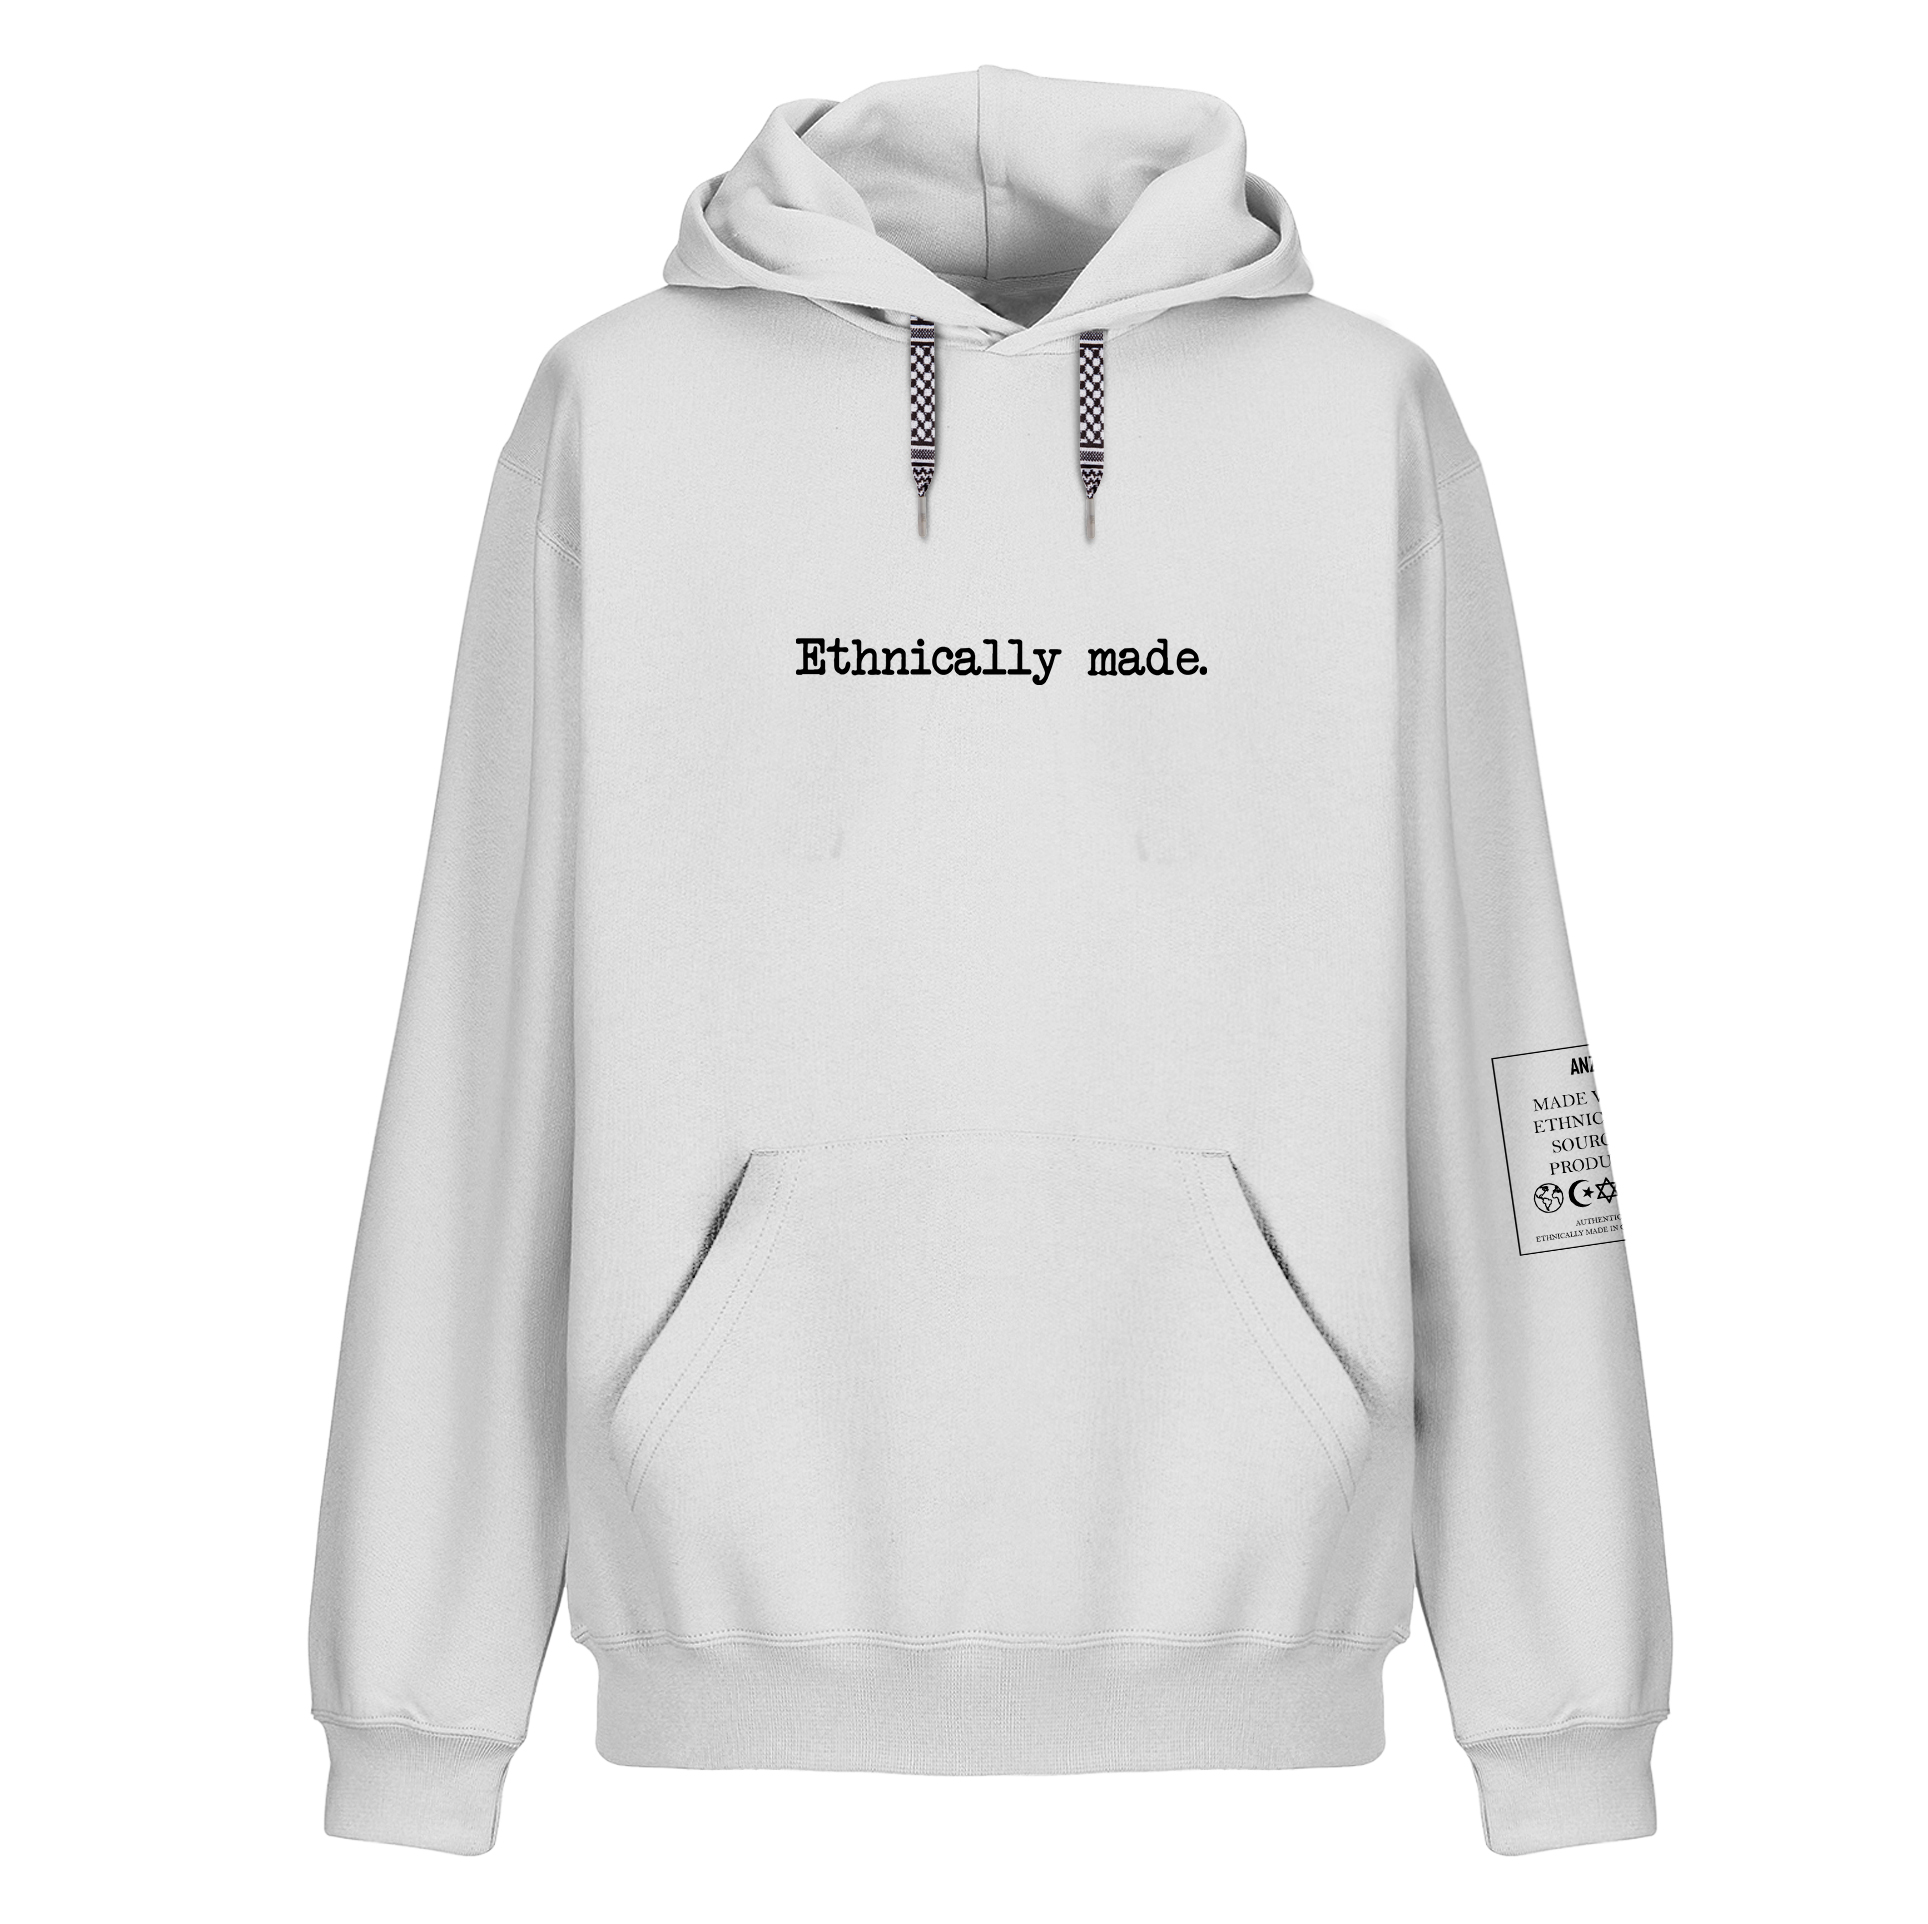 77ad04f02 Ethnically Made Hoodie white | ANZ